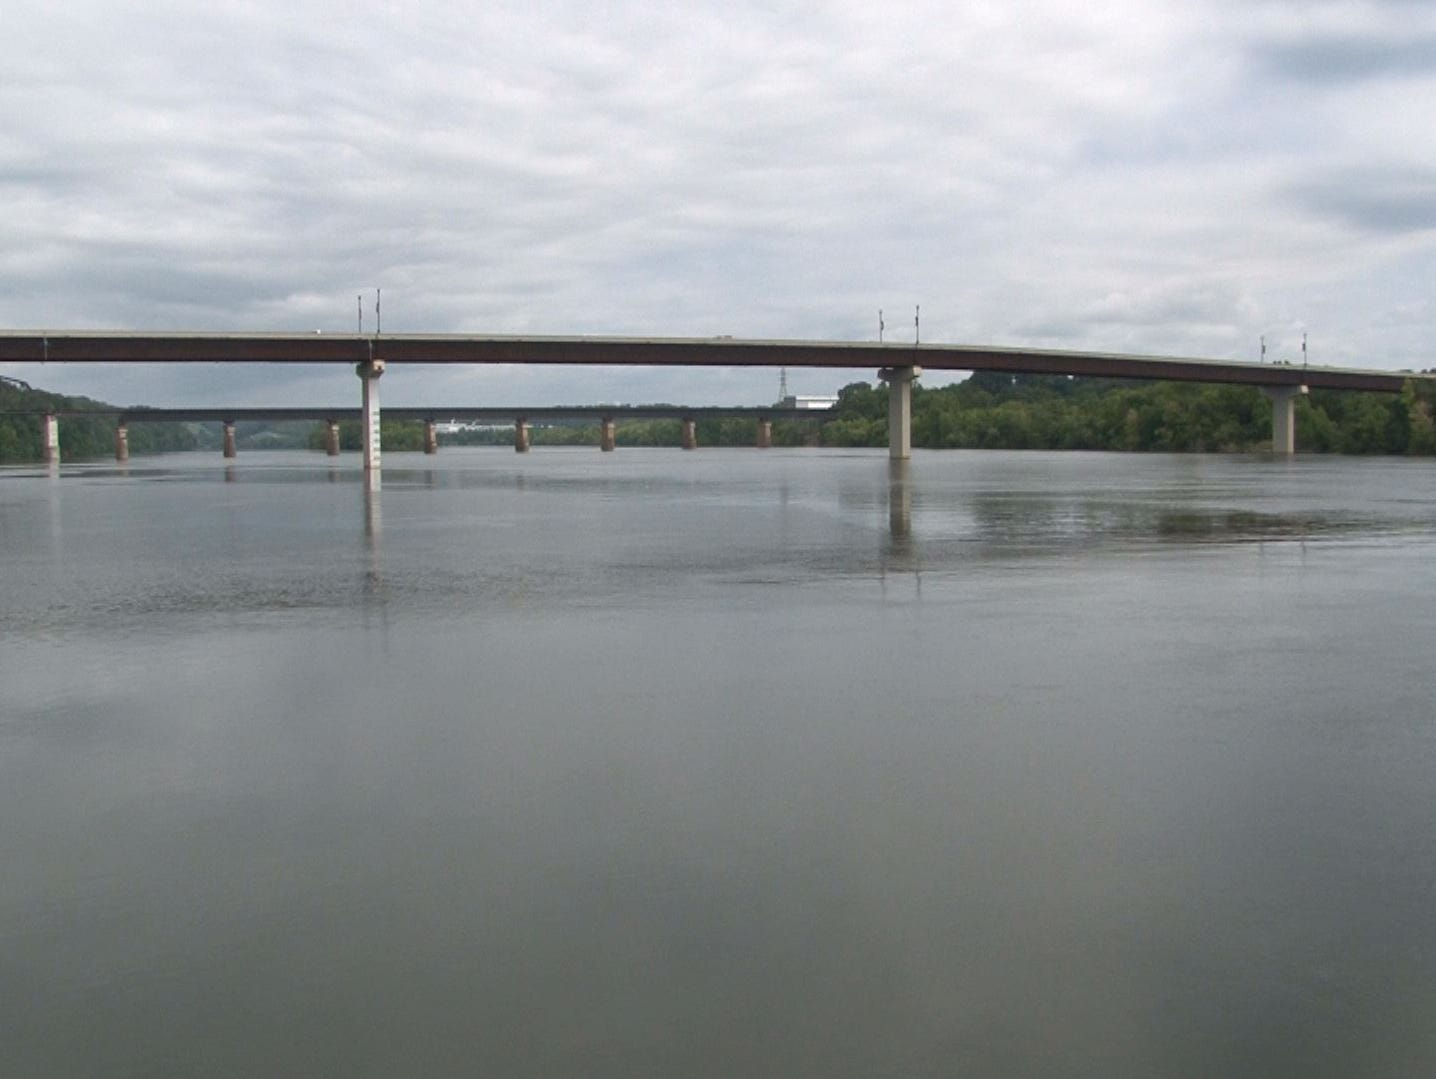 The bridge over the Tennessee River that connects Lenoir City and Loudon